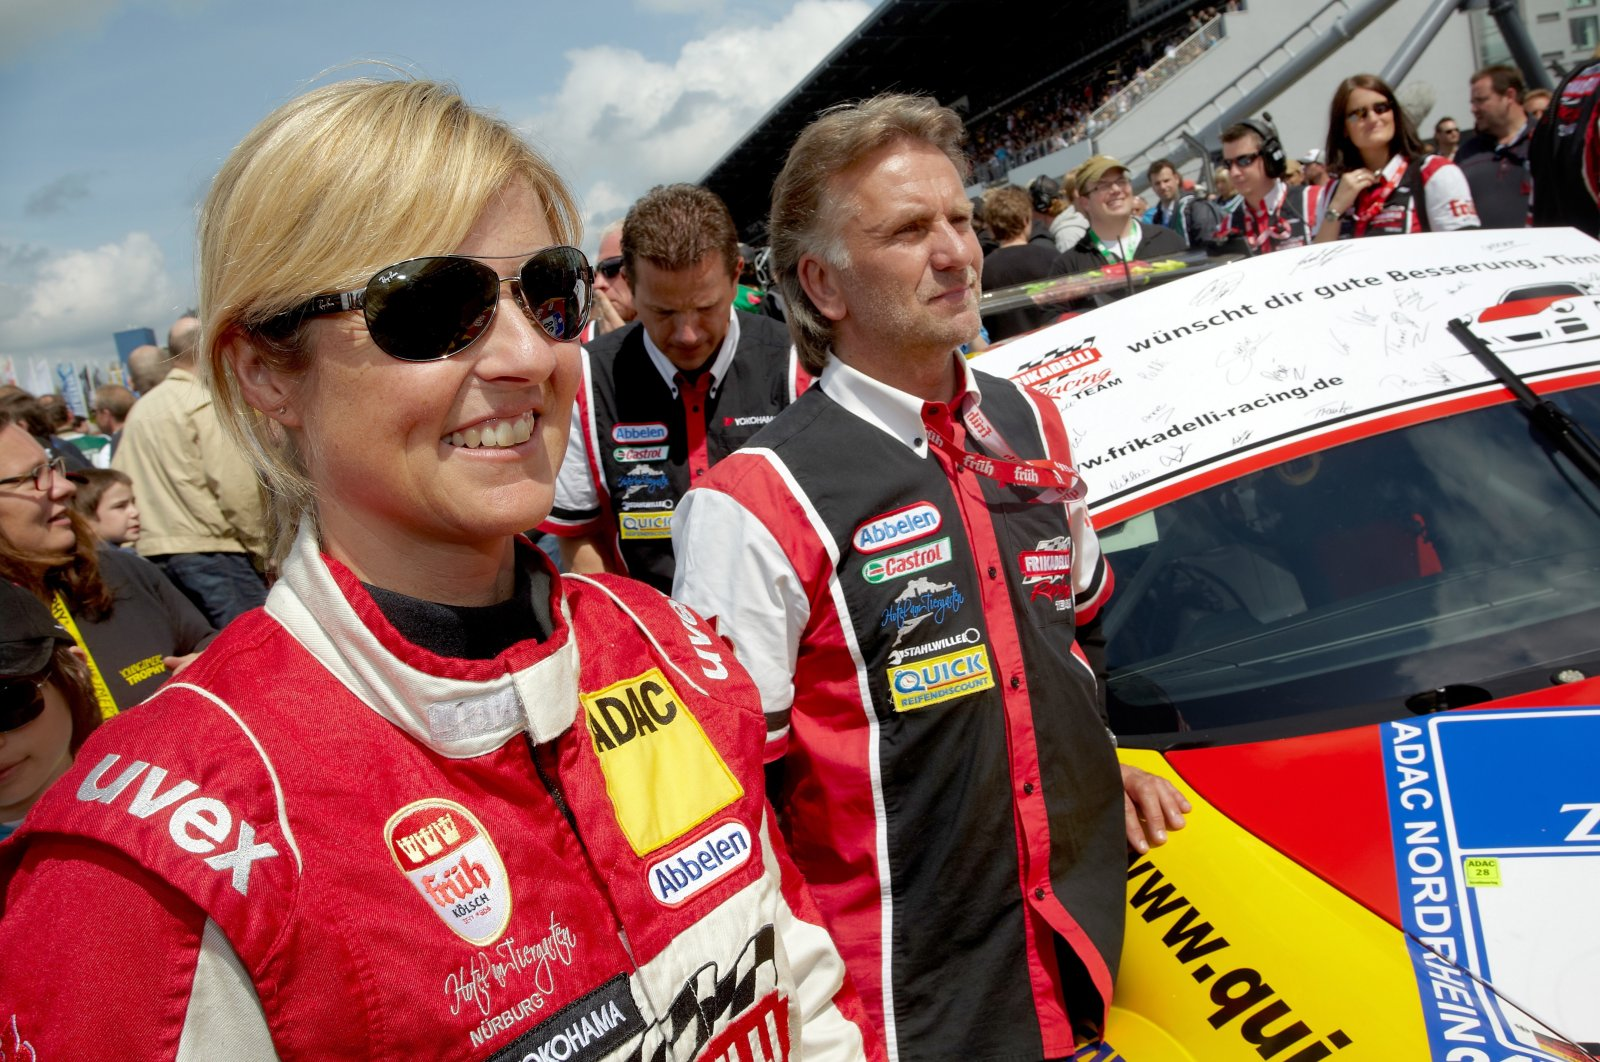 German racing driver Sabine Schmitz (L) of Team Frikadelli Racing standing next to her Porsche racing car during the 24-hour car race on the Nuerburgring race track, Germany, May 19, 2011. (EPA Photo)